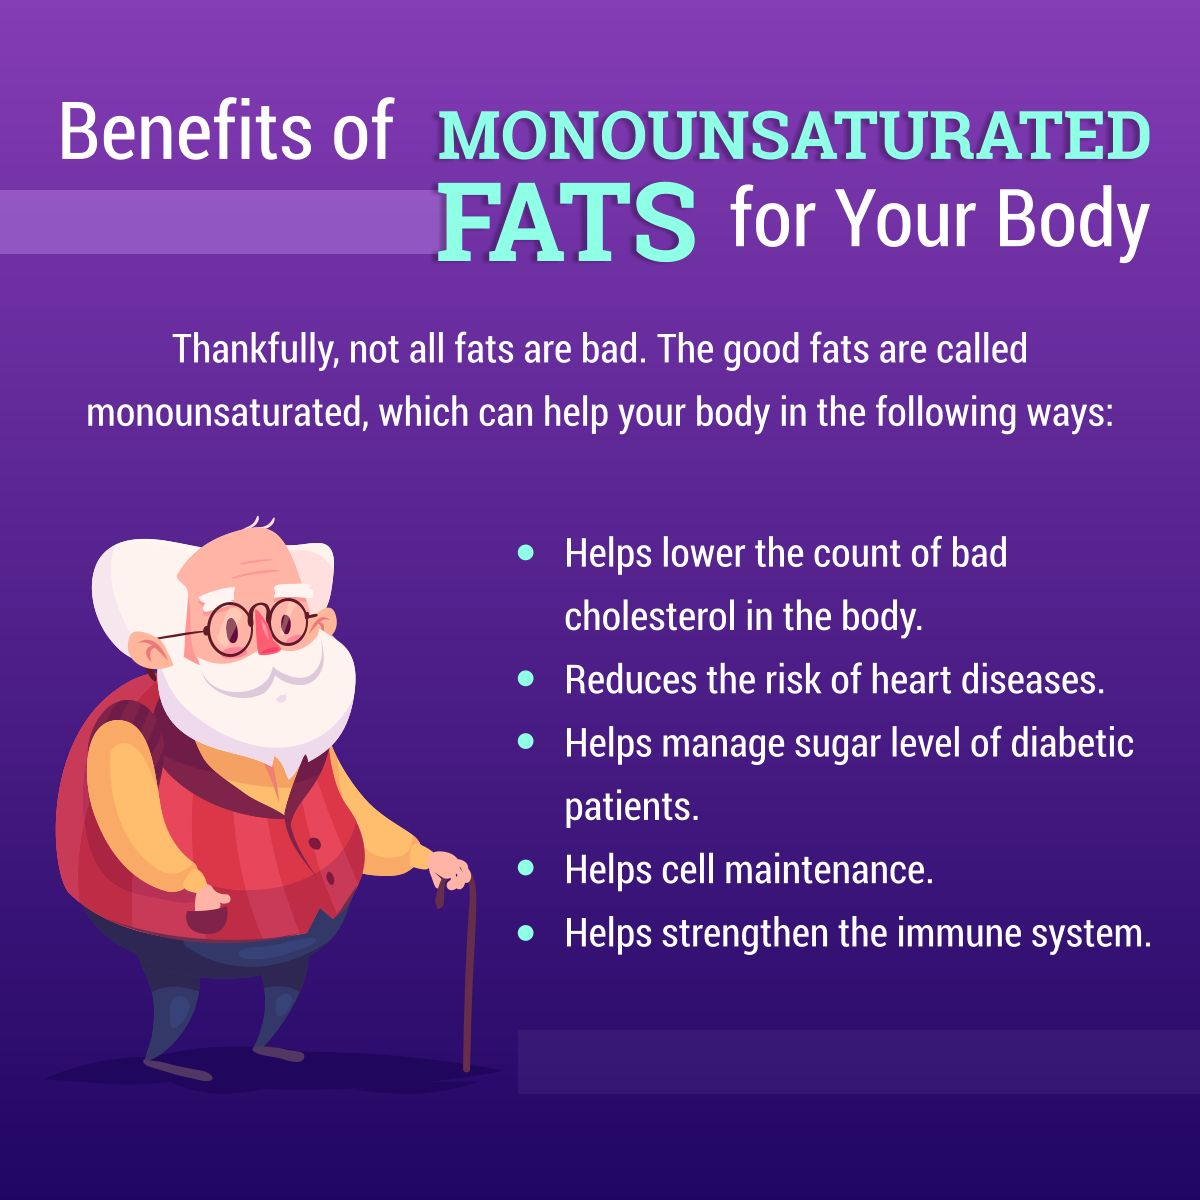 Benefits of Monounsaturated Fats for Your Body